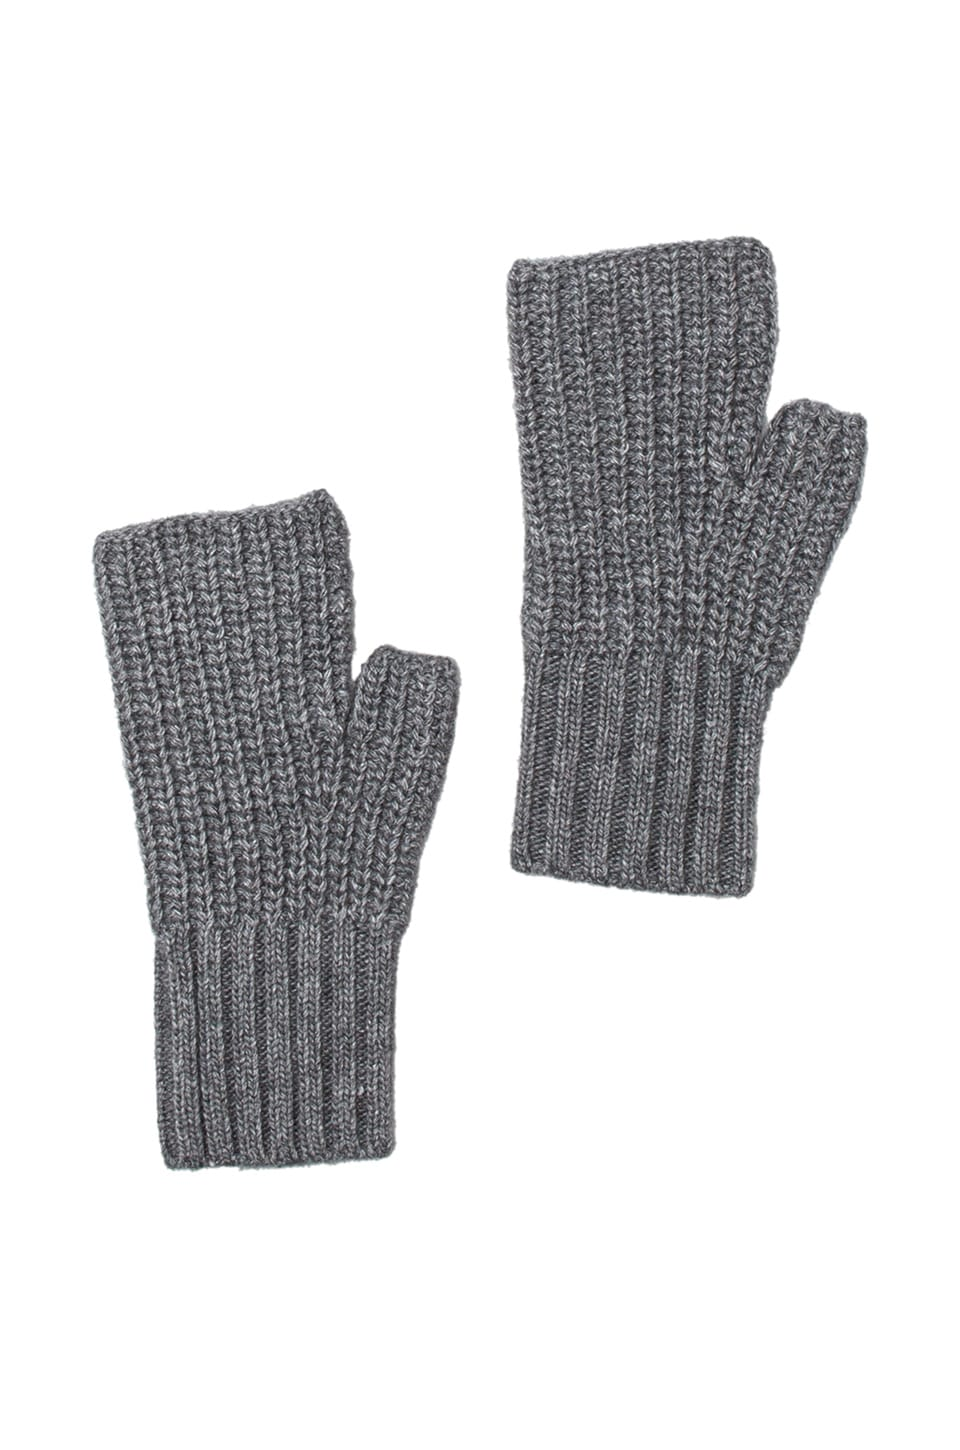 Autumn Cashmere Fingerless Gloves in Flannel